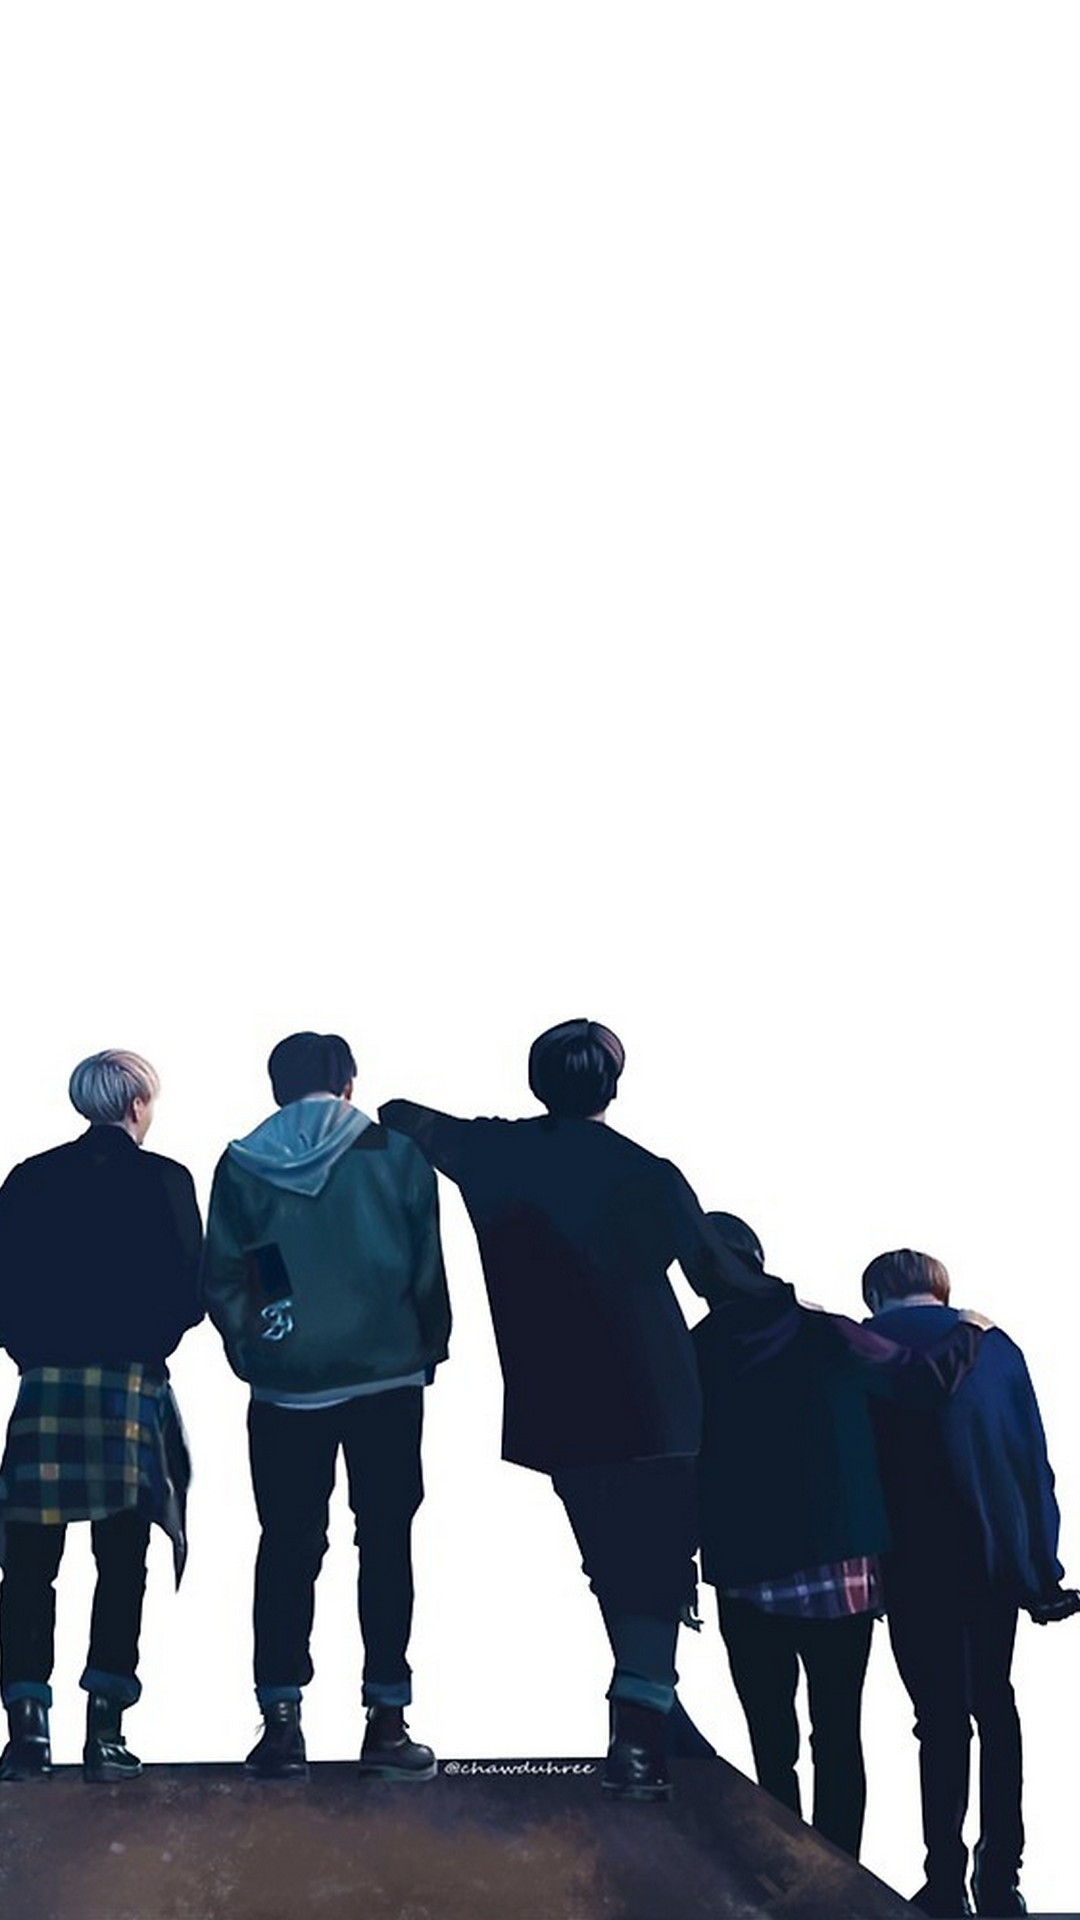 BTS Cellphone Wallpaper with high-resolution 1080x1920 pixel. You can use this wallpaper for your Desktop Computer Backgrounds, Mac Wallpapers, Android Lock screen or iPhone Screensavers and another smartphone device